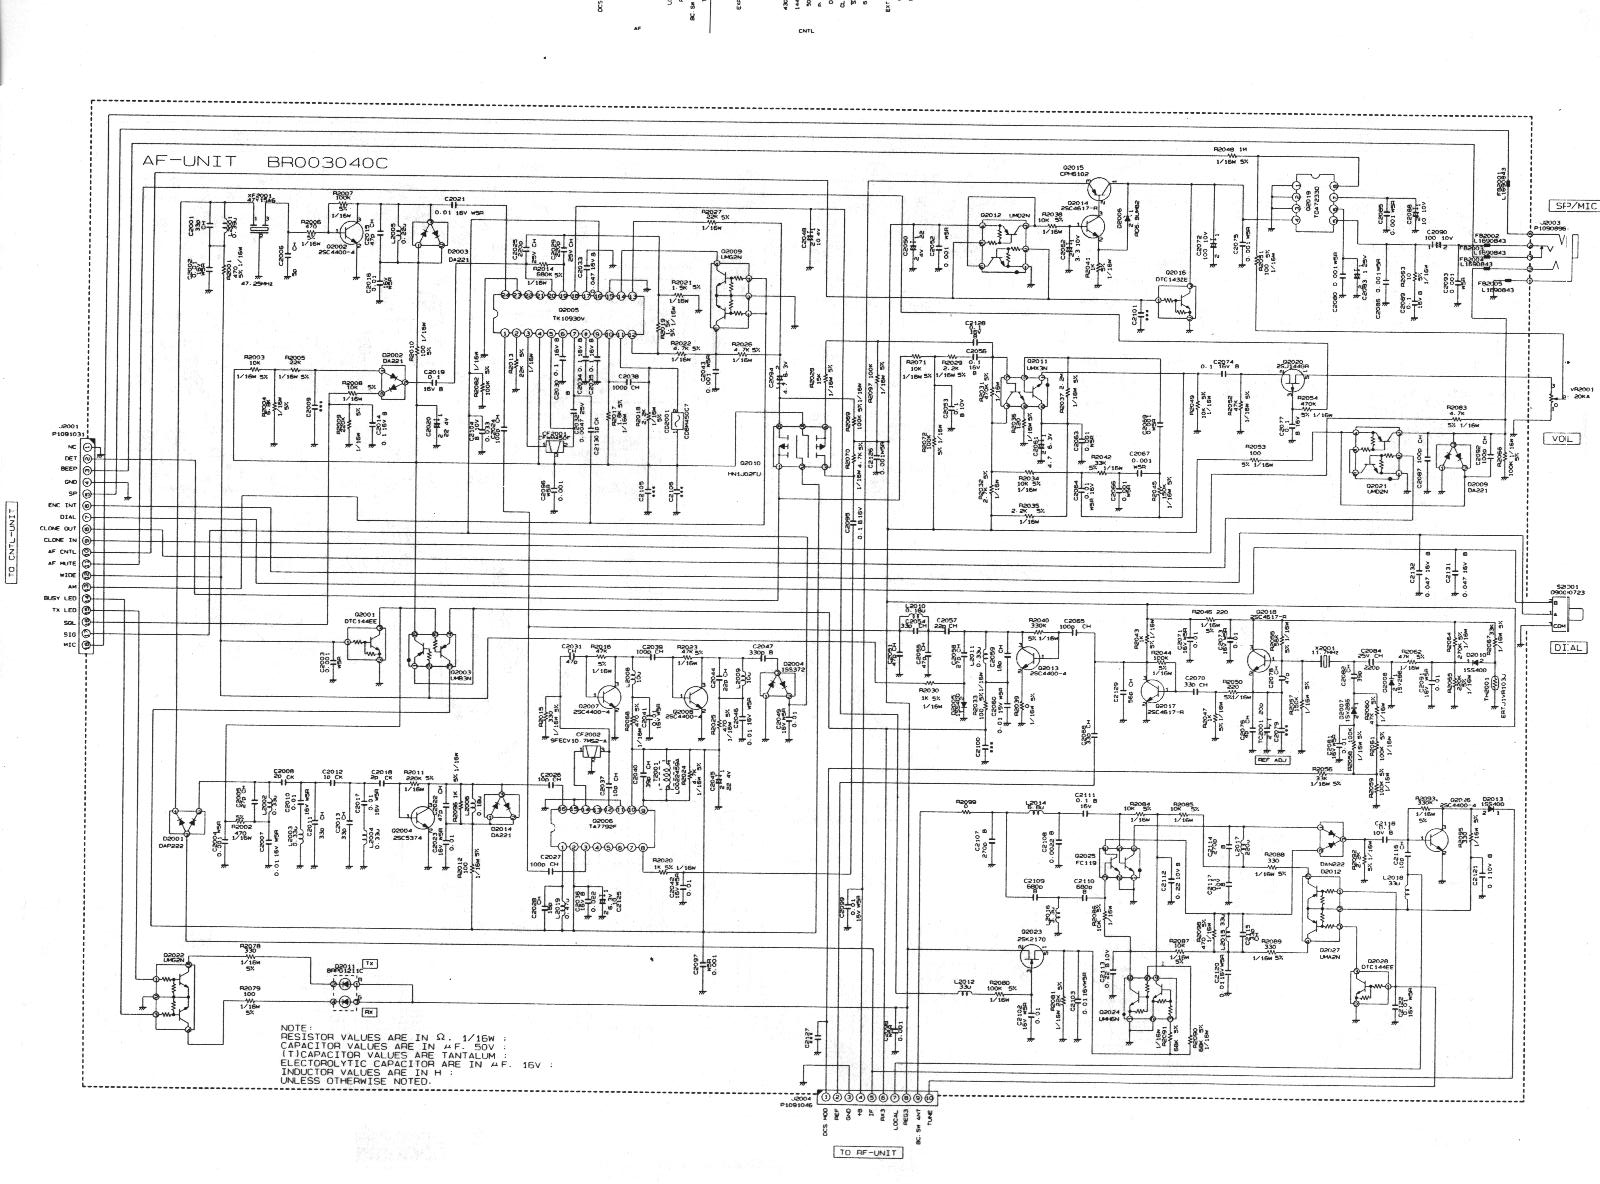 YAESU VX 5 Schematic a index of pub radio_manuals yaesu Yaesu G-450A at bayanpartner.co